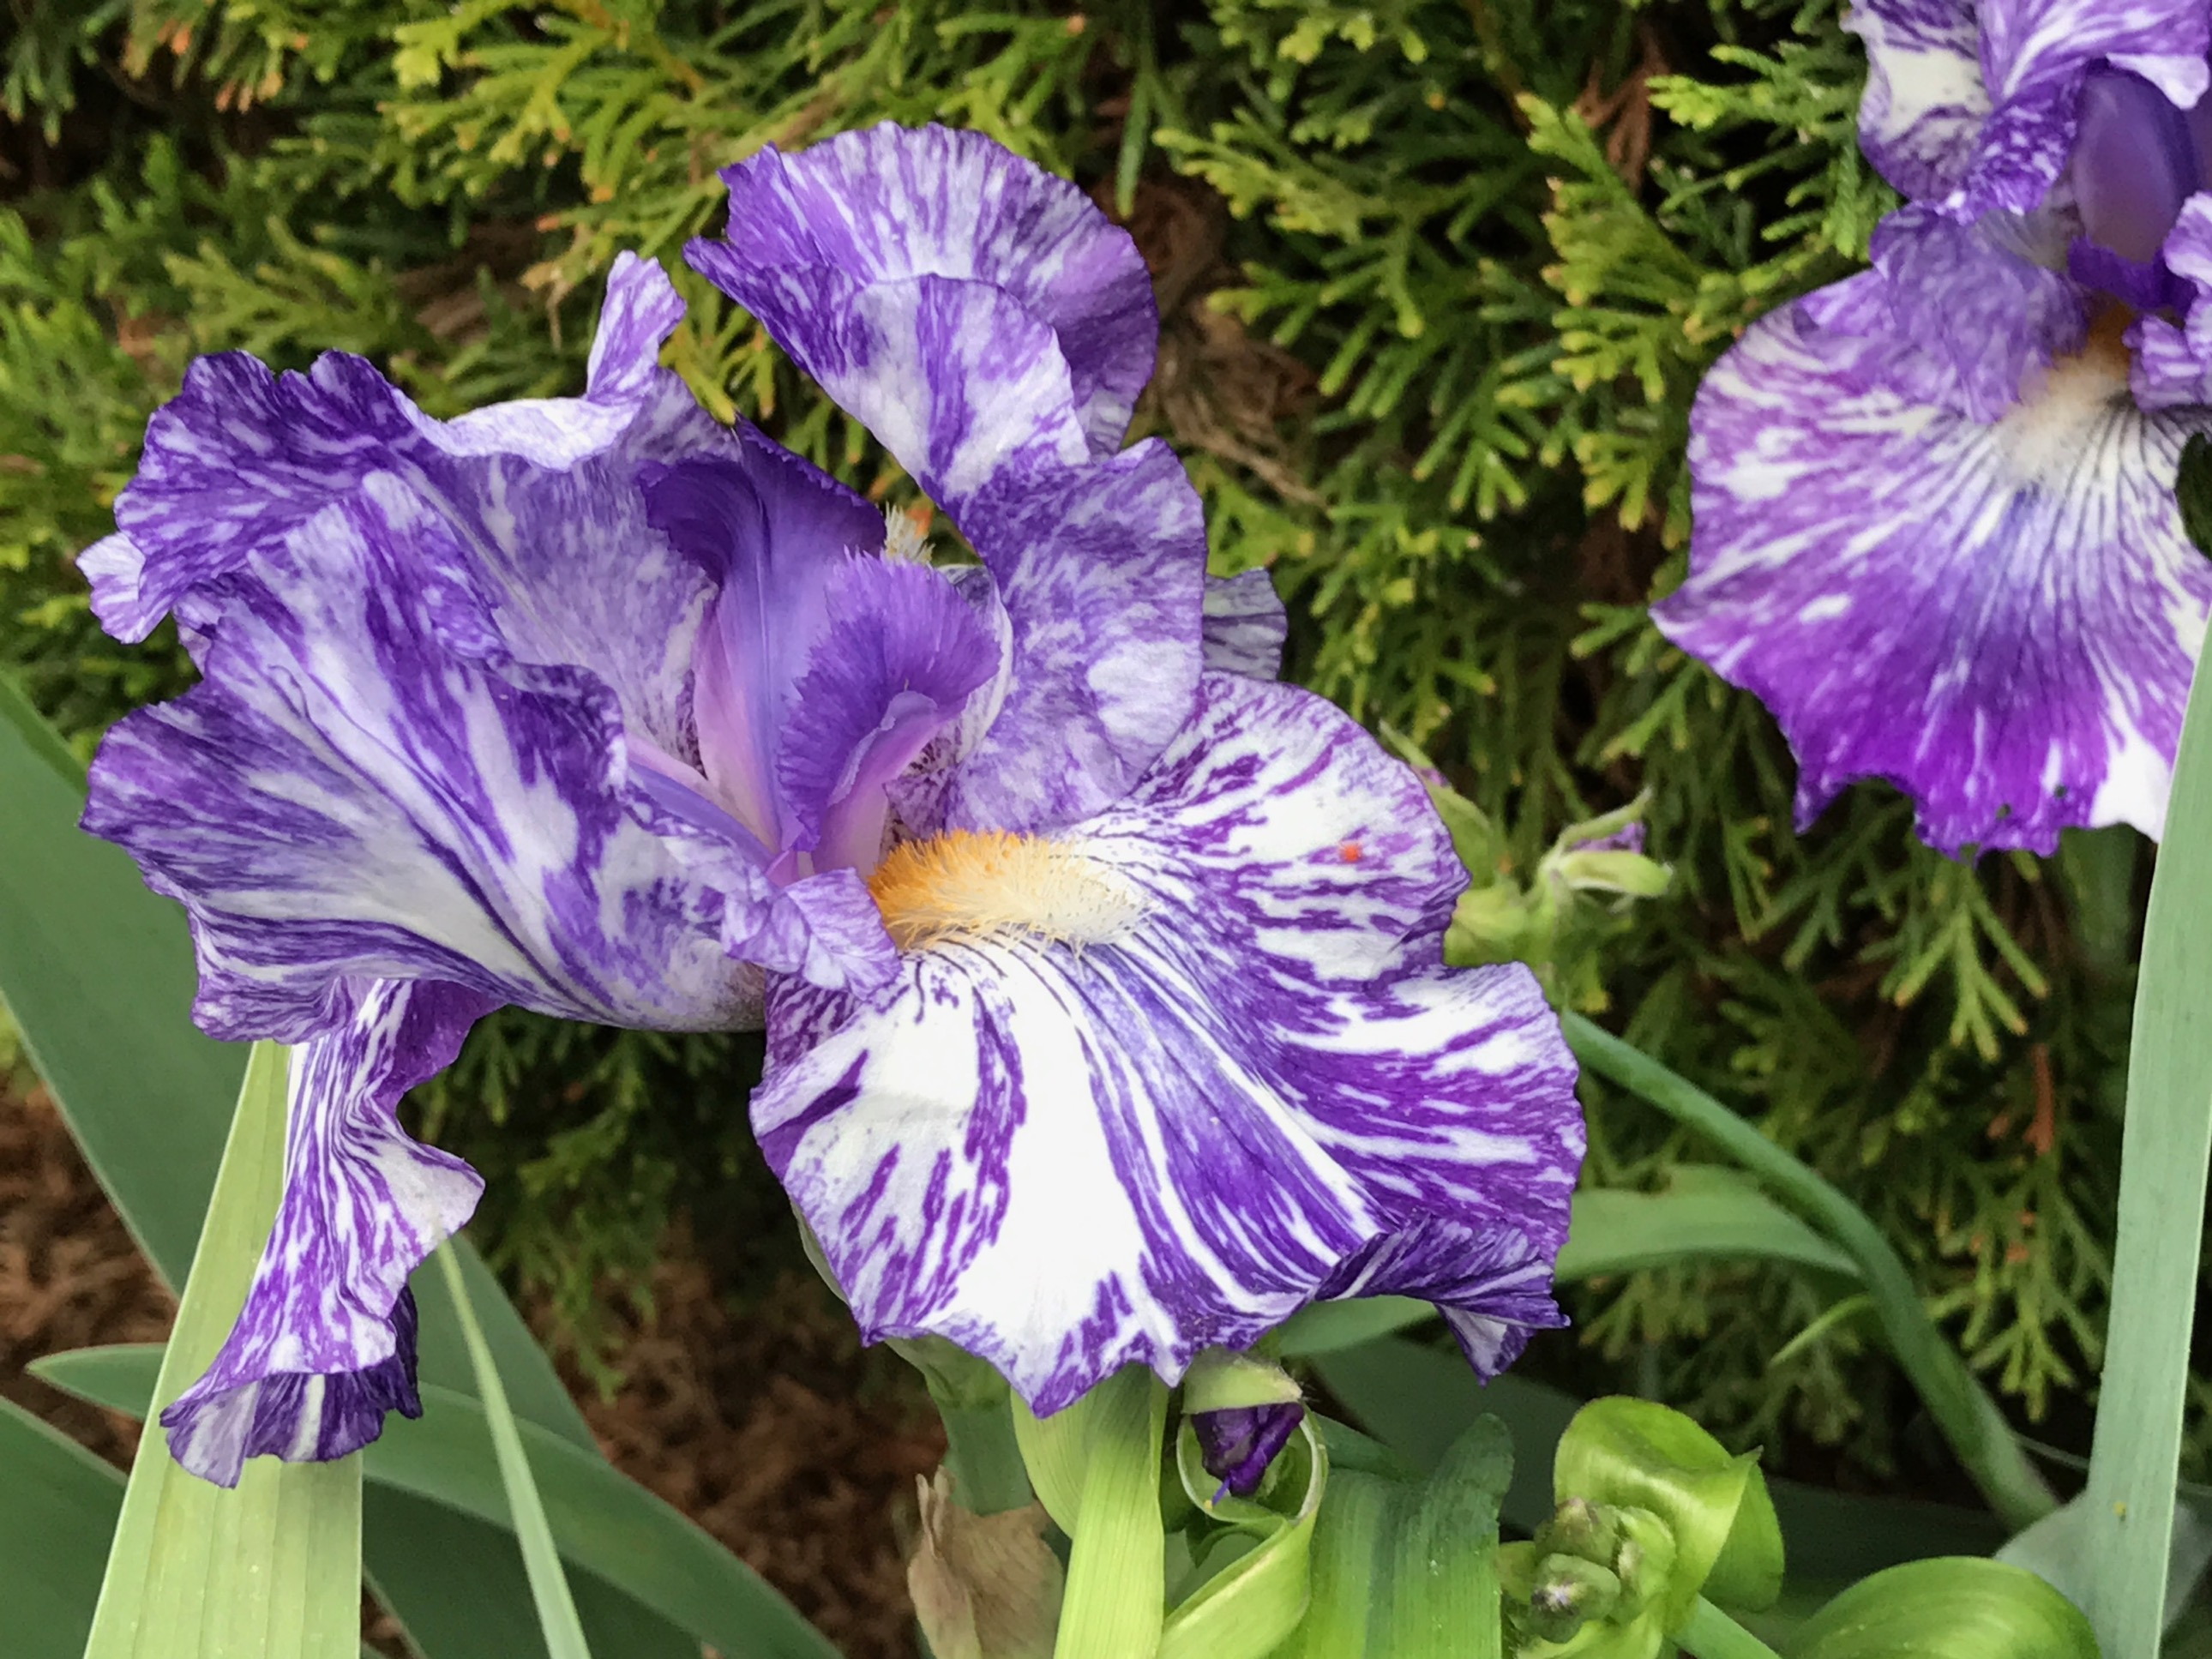 Iris germanica batik bearded iris pbmgarden - Iris germanica ...